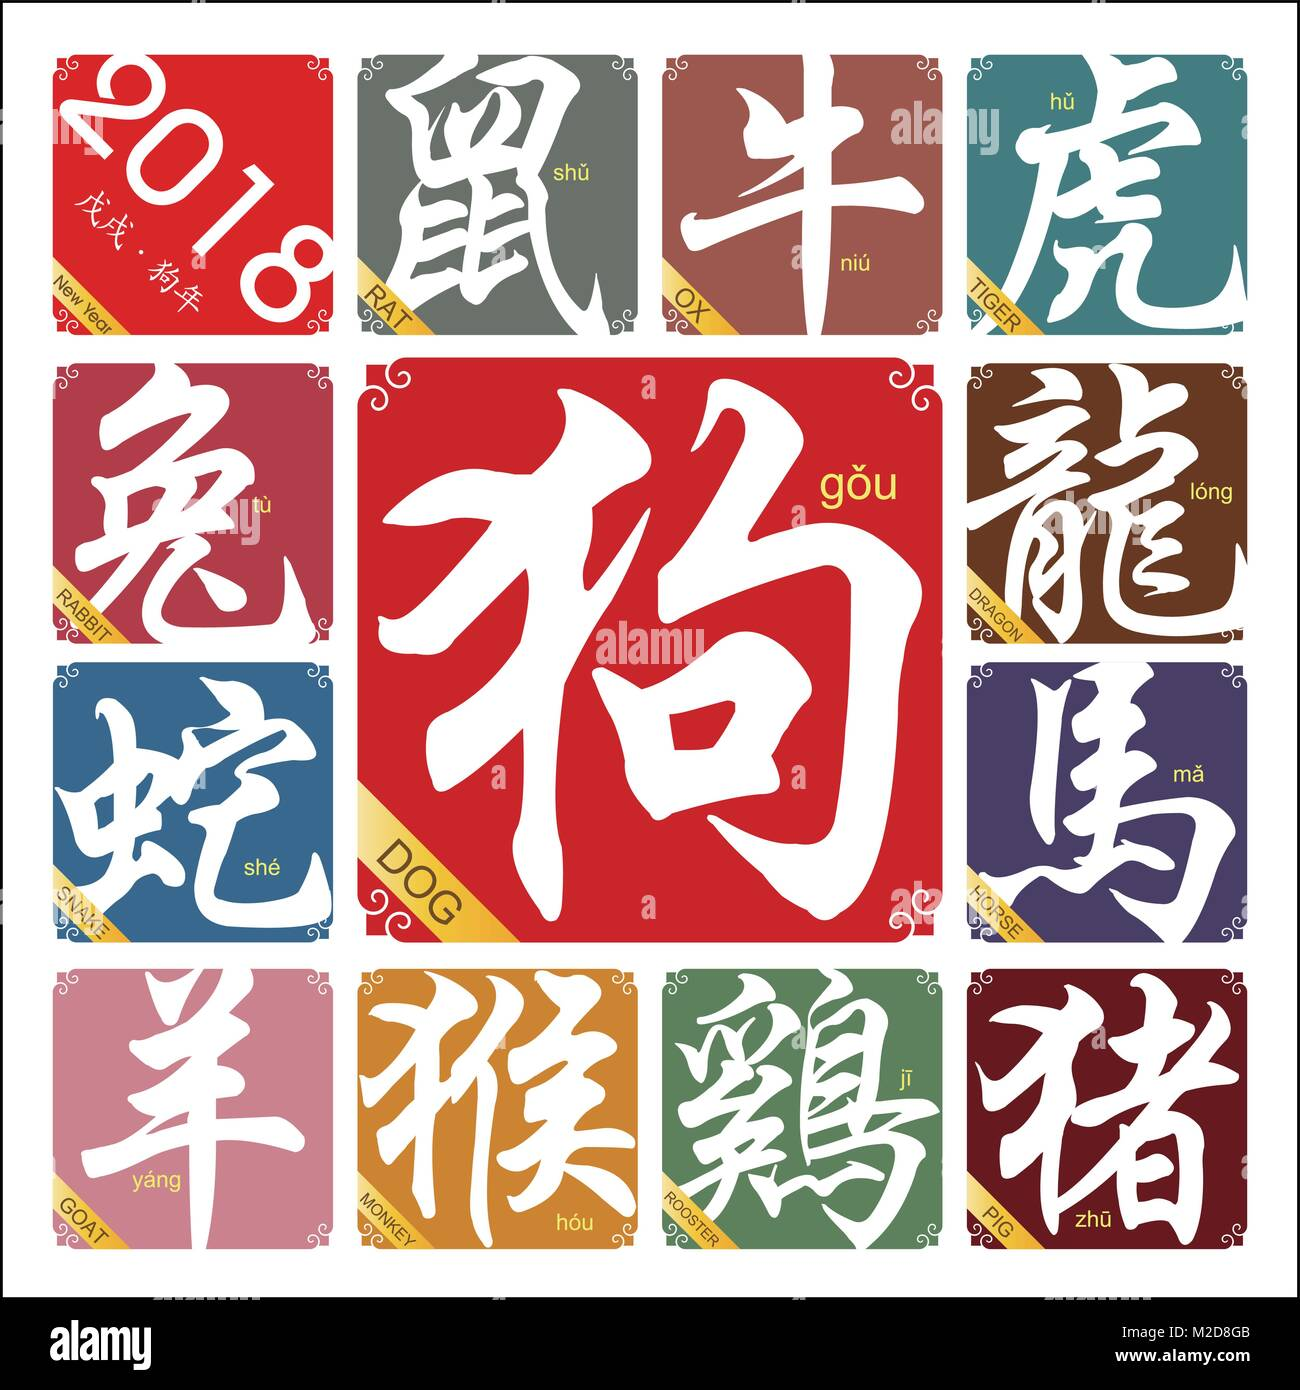 Chinese Zodiac Signs Stock Photos & Chinese Zodiac Signs